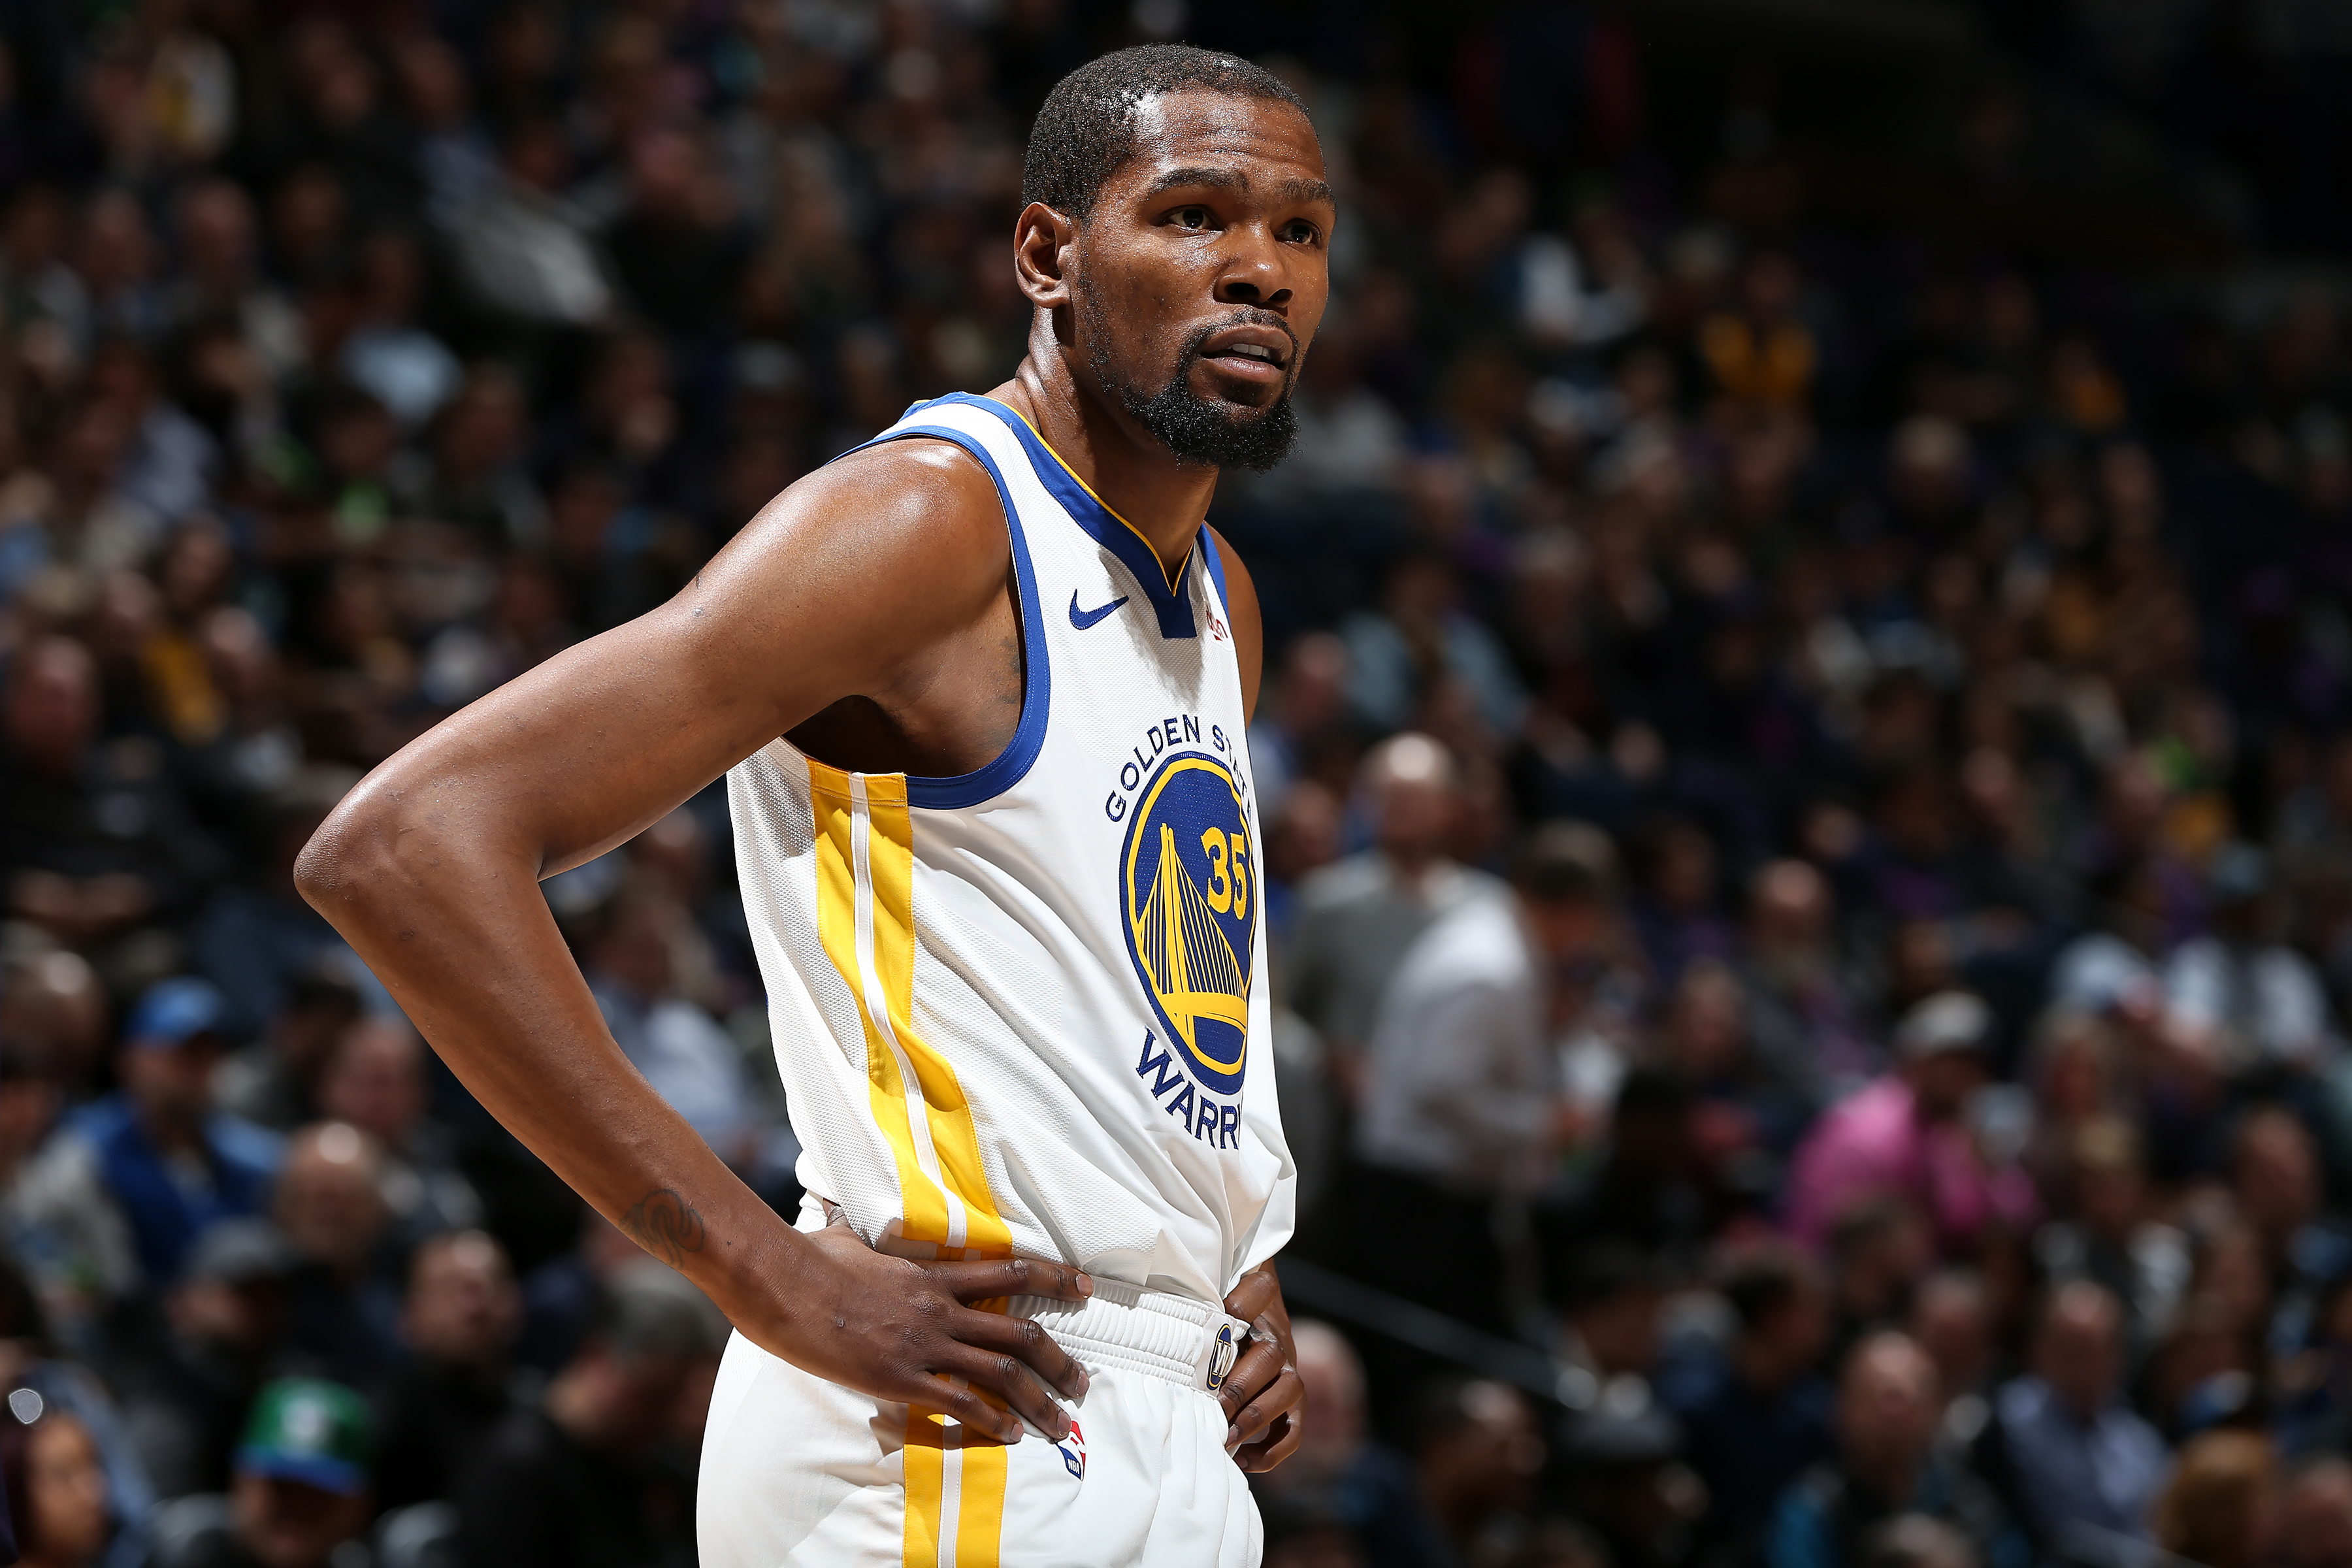 MINNEAPOLIS, MN - MARCH 19: Kevin Durant #35 of the Golden State Warriors looks on against the Minnesota Timberwolves on March 19, 2019 at Target Center in Minneapolis, Minnesota. NOTE TO USER: User expressly acknowledges and agrees that, by downloading and or using this Photograph, user is consenting to the terms and conditions of the Getty Images License Agreement. Mandatory Copyright Notice: Copyright 2019 NBAE (Photo by David Sherman/NBAE via Getty Images)